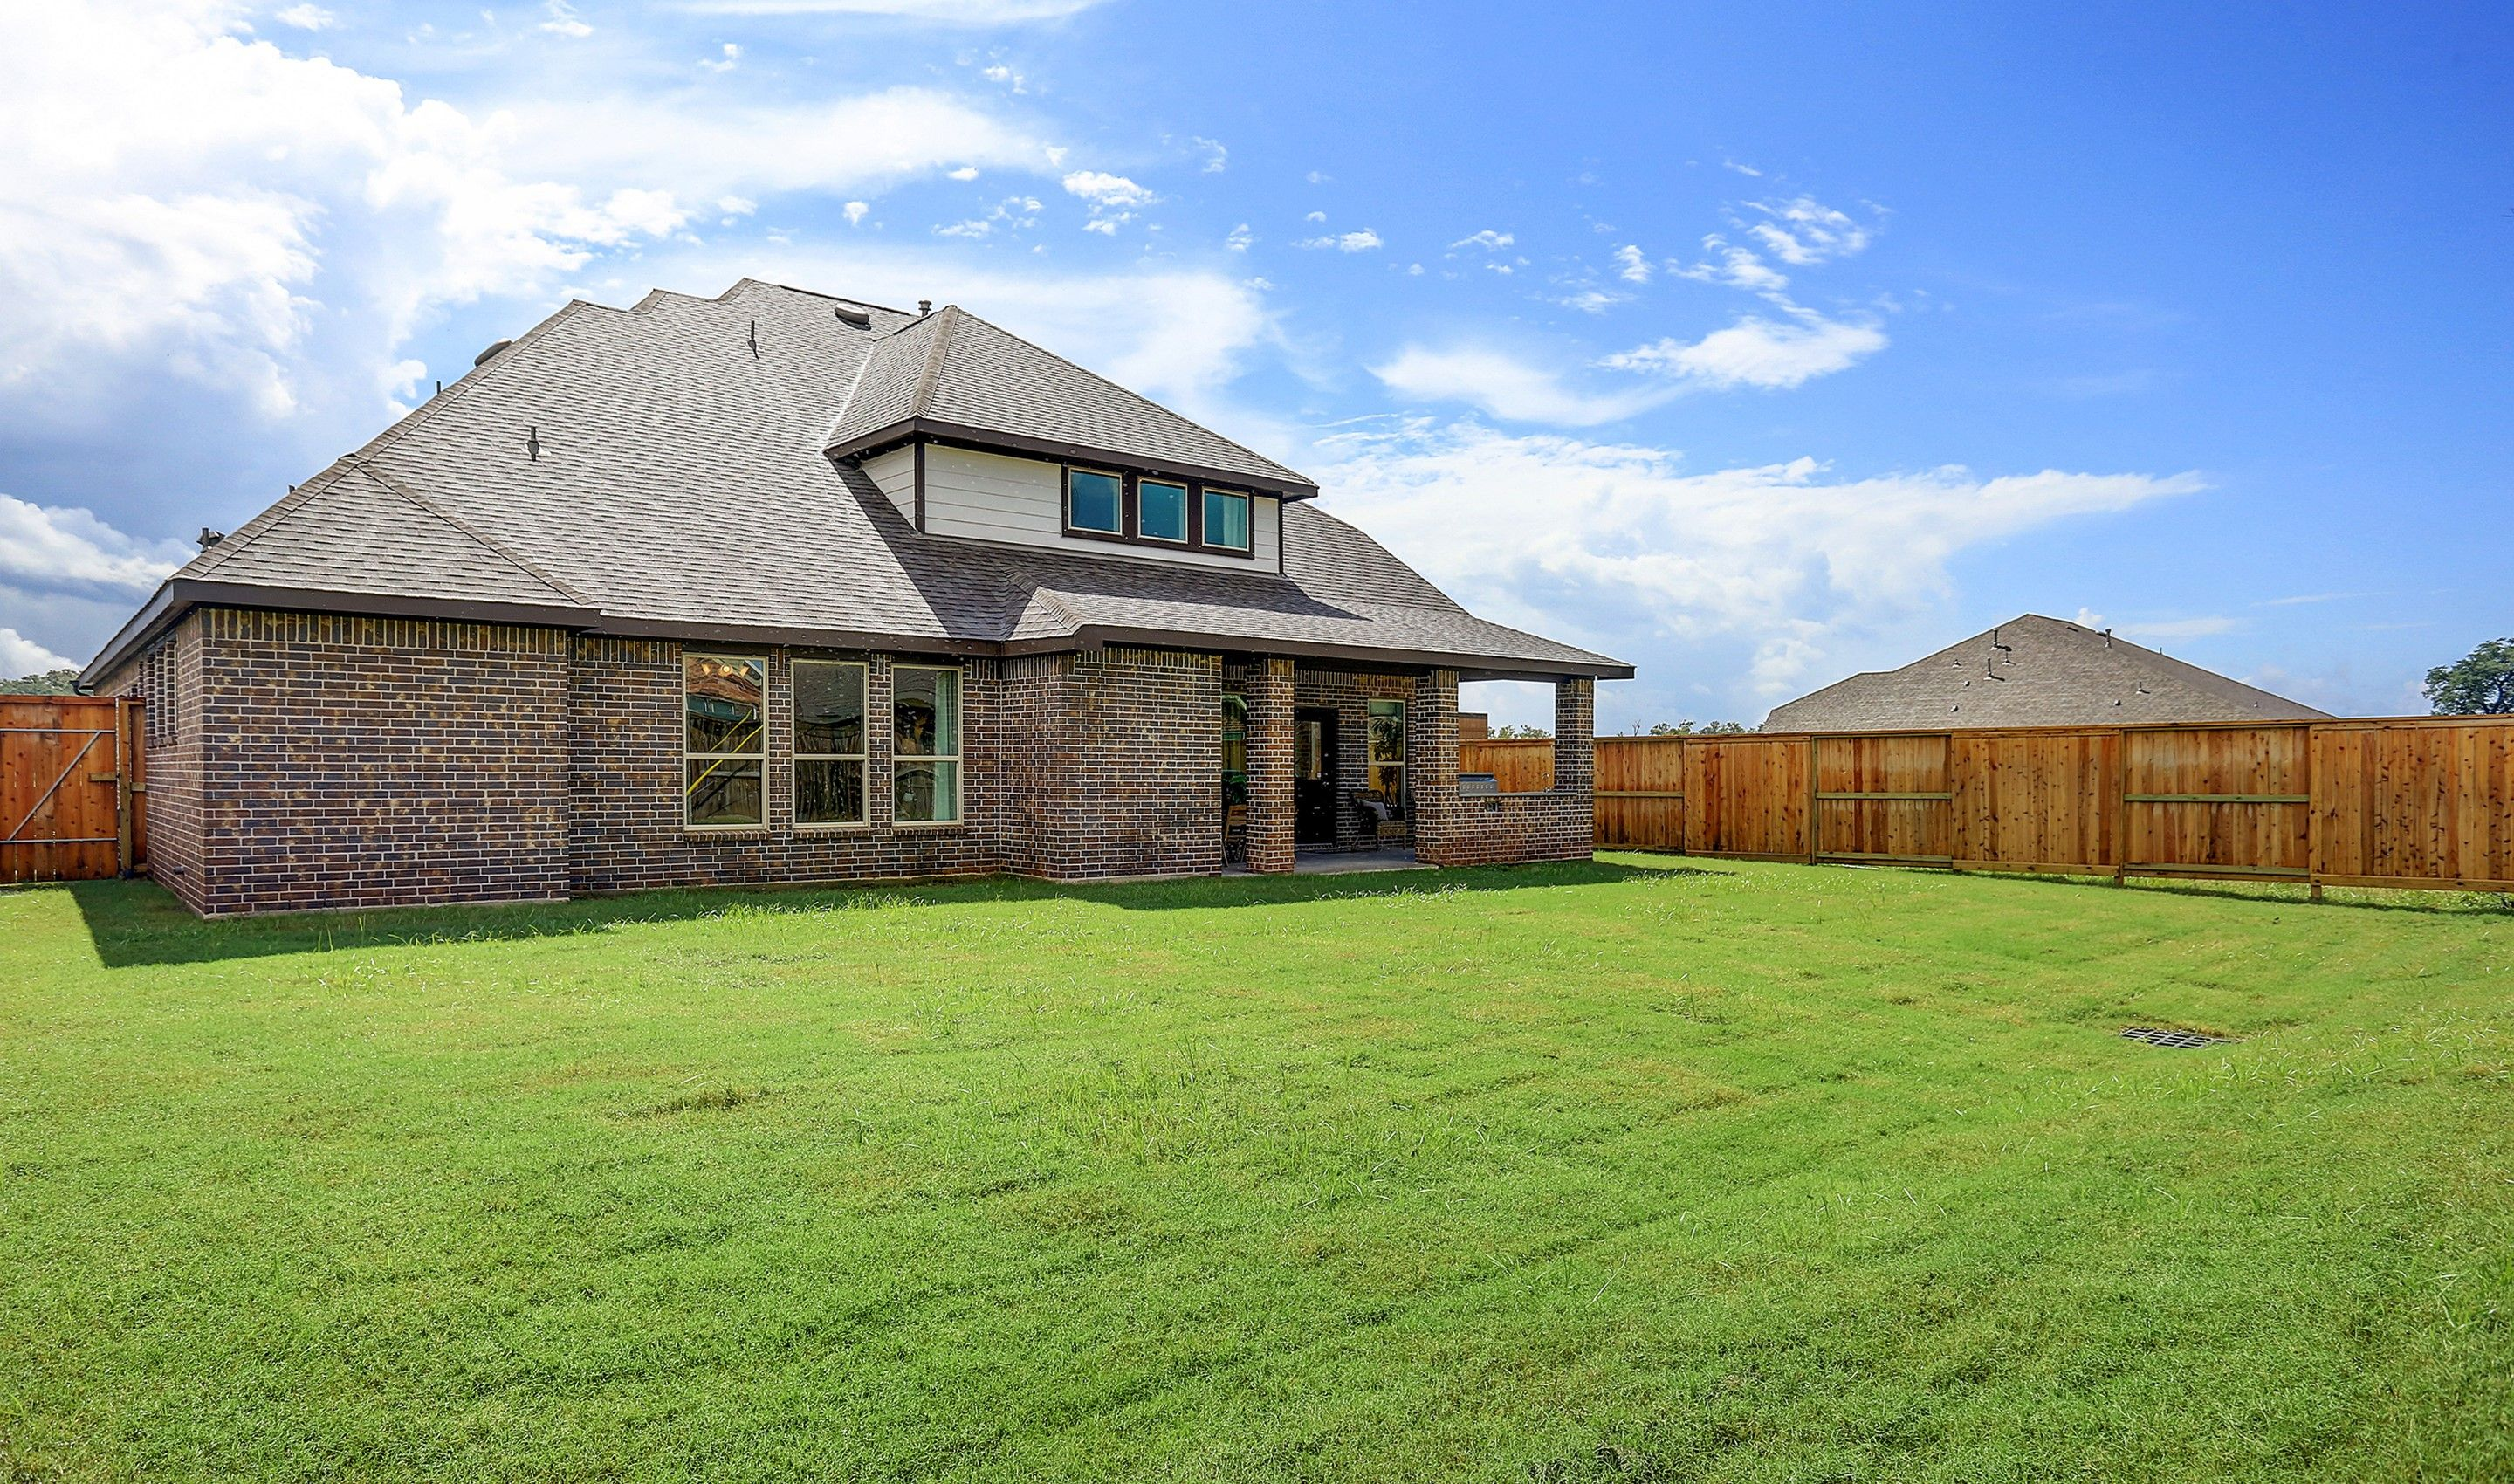 Rear-Design-in-Millie-at-Woodshore-in-Clute